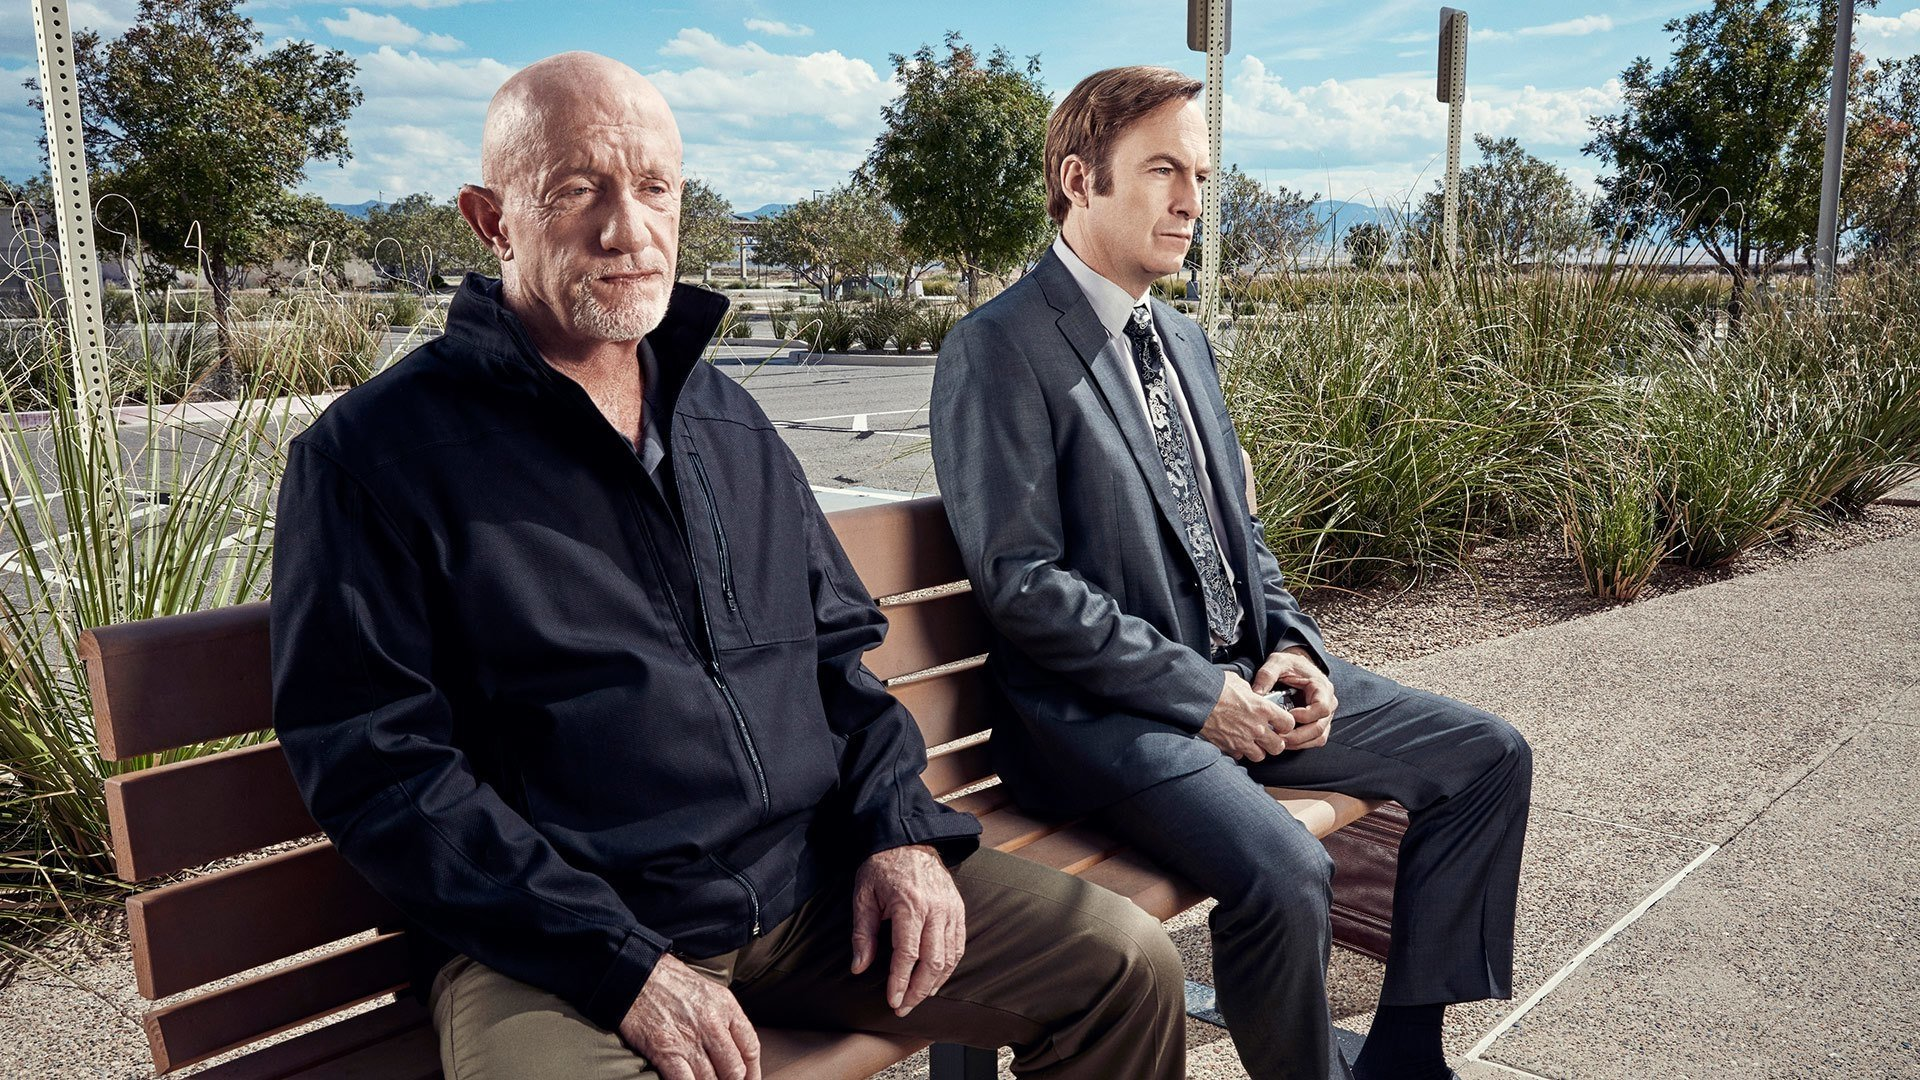 Walter White Iphone 5 Wallpaper Better Call Saul Full Hd Wallpaper And Background